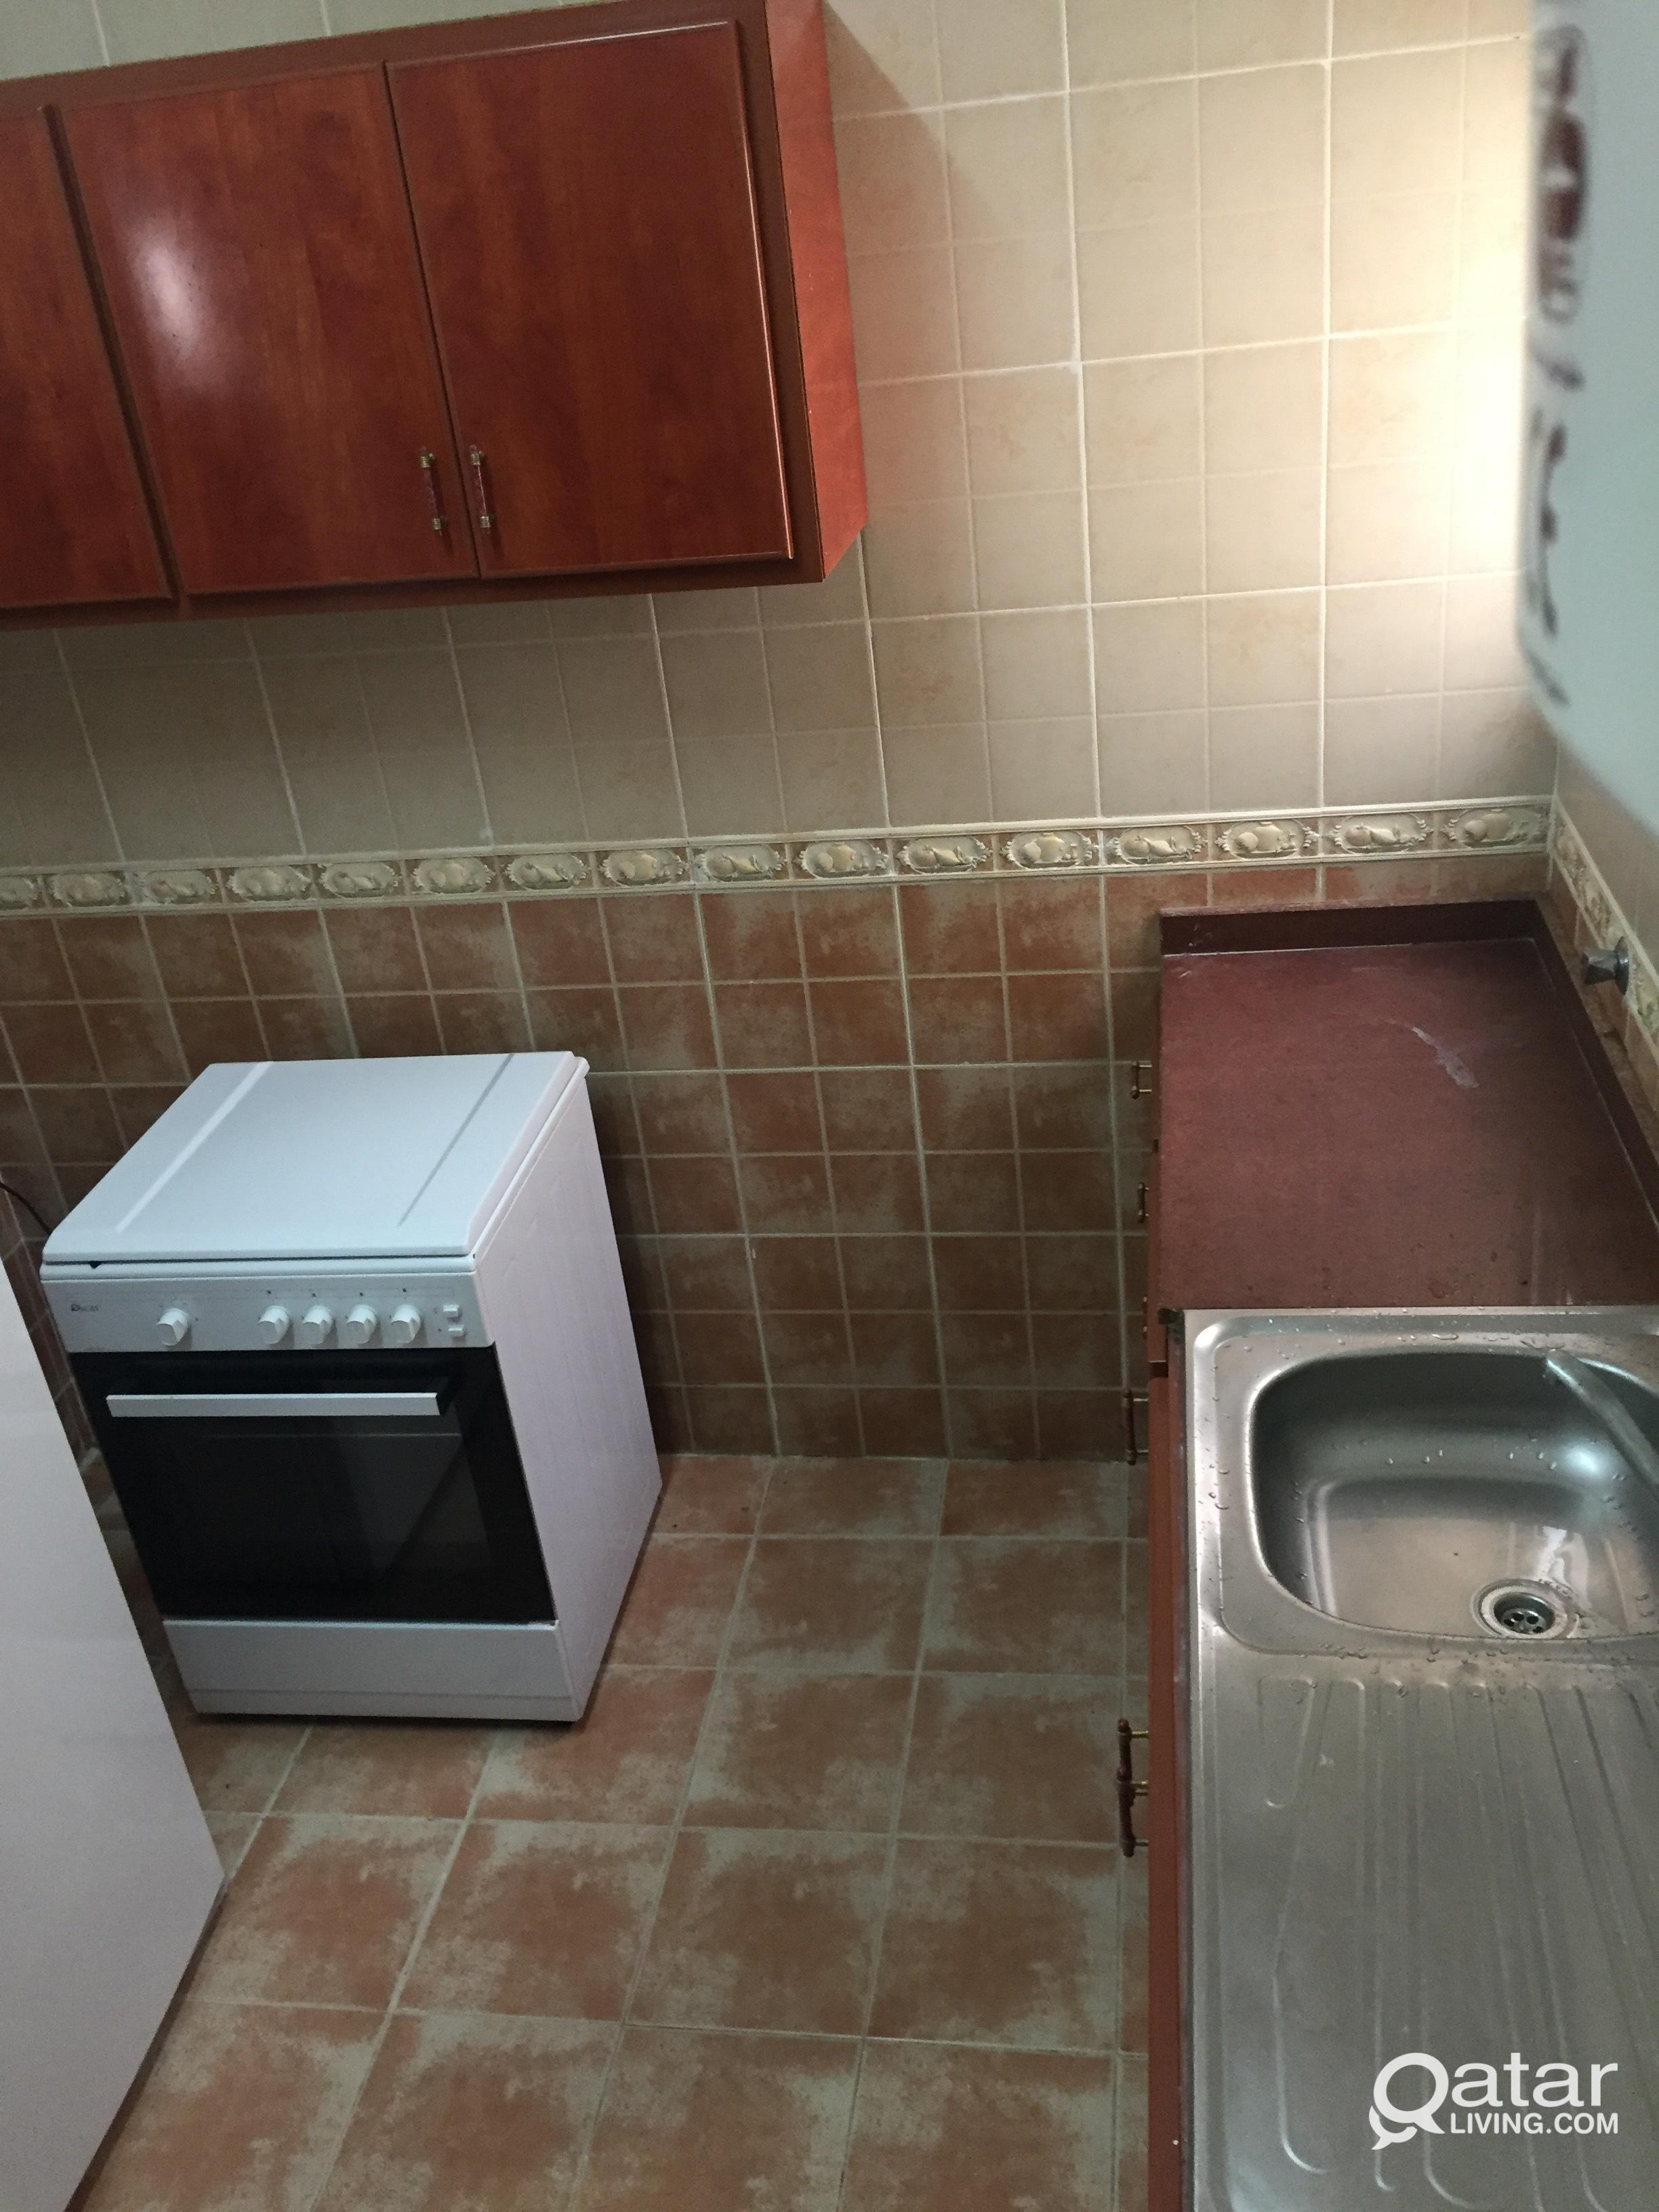 1 Bedroom full/ 1 Bed out of 2 in 1 bedroom